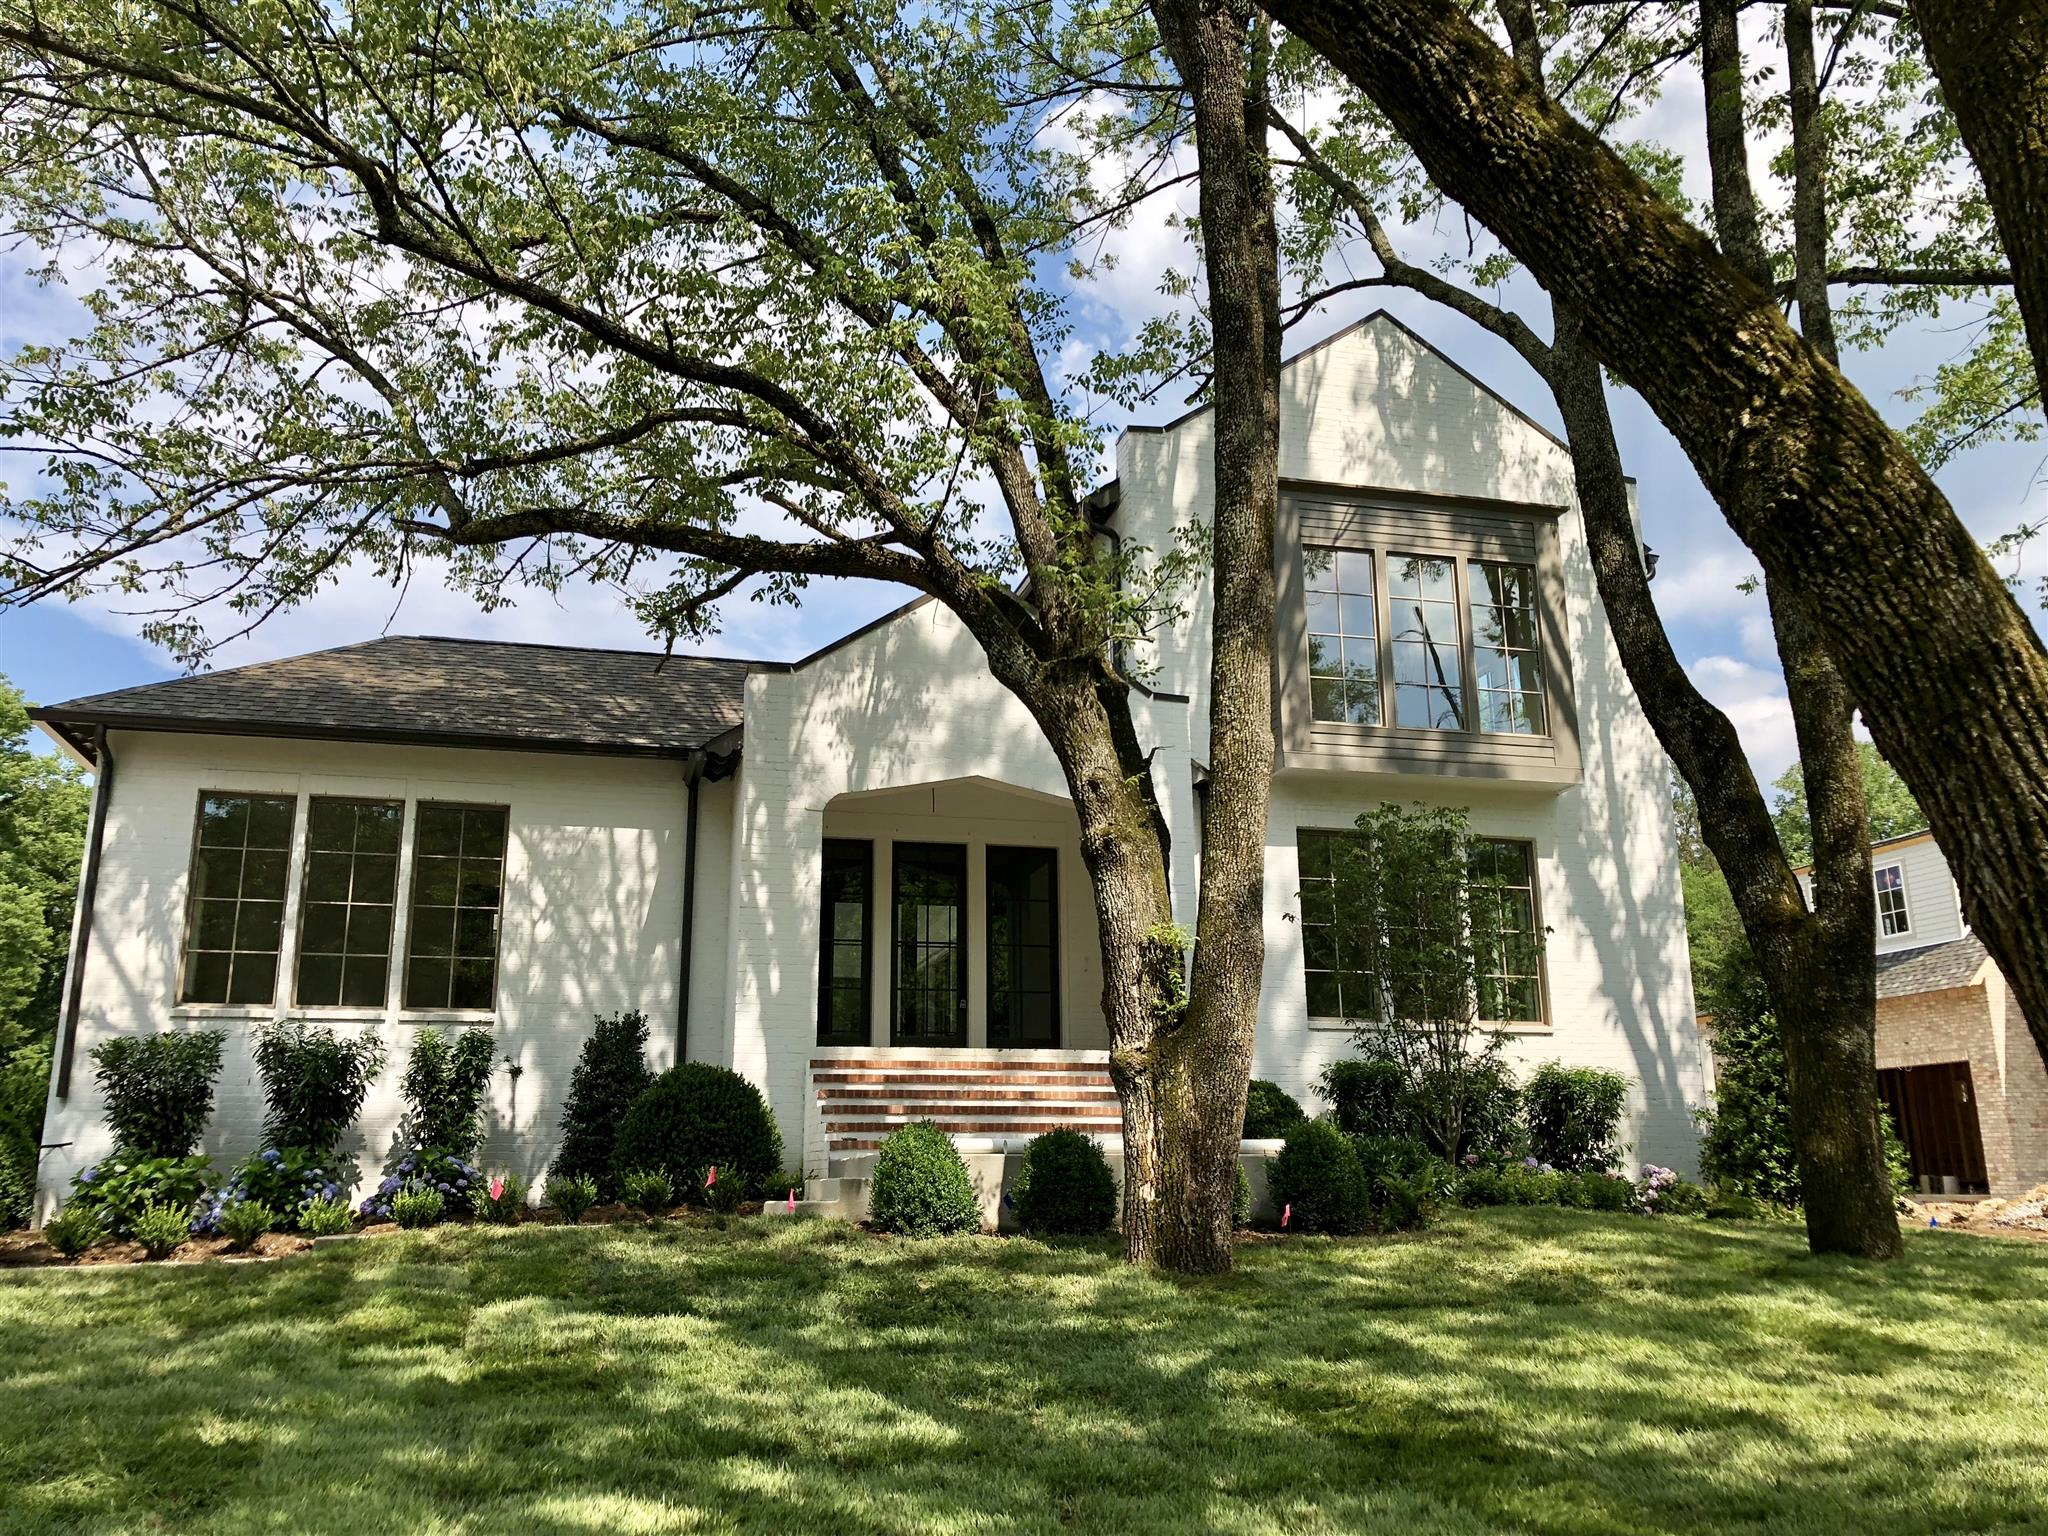 4228 Wallace Lane, Nashville - Green Hills, Tennessee